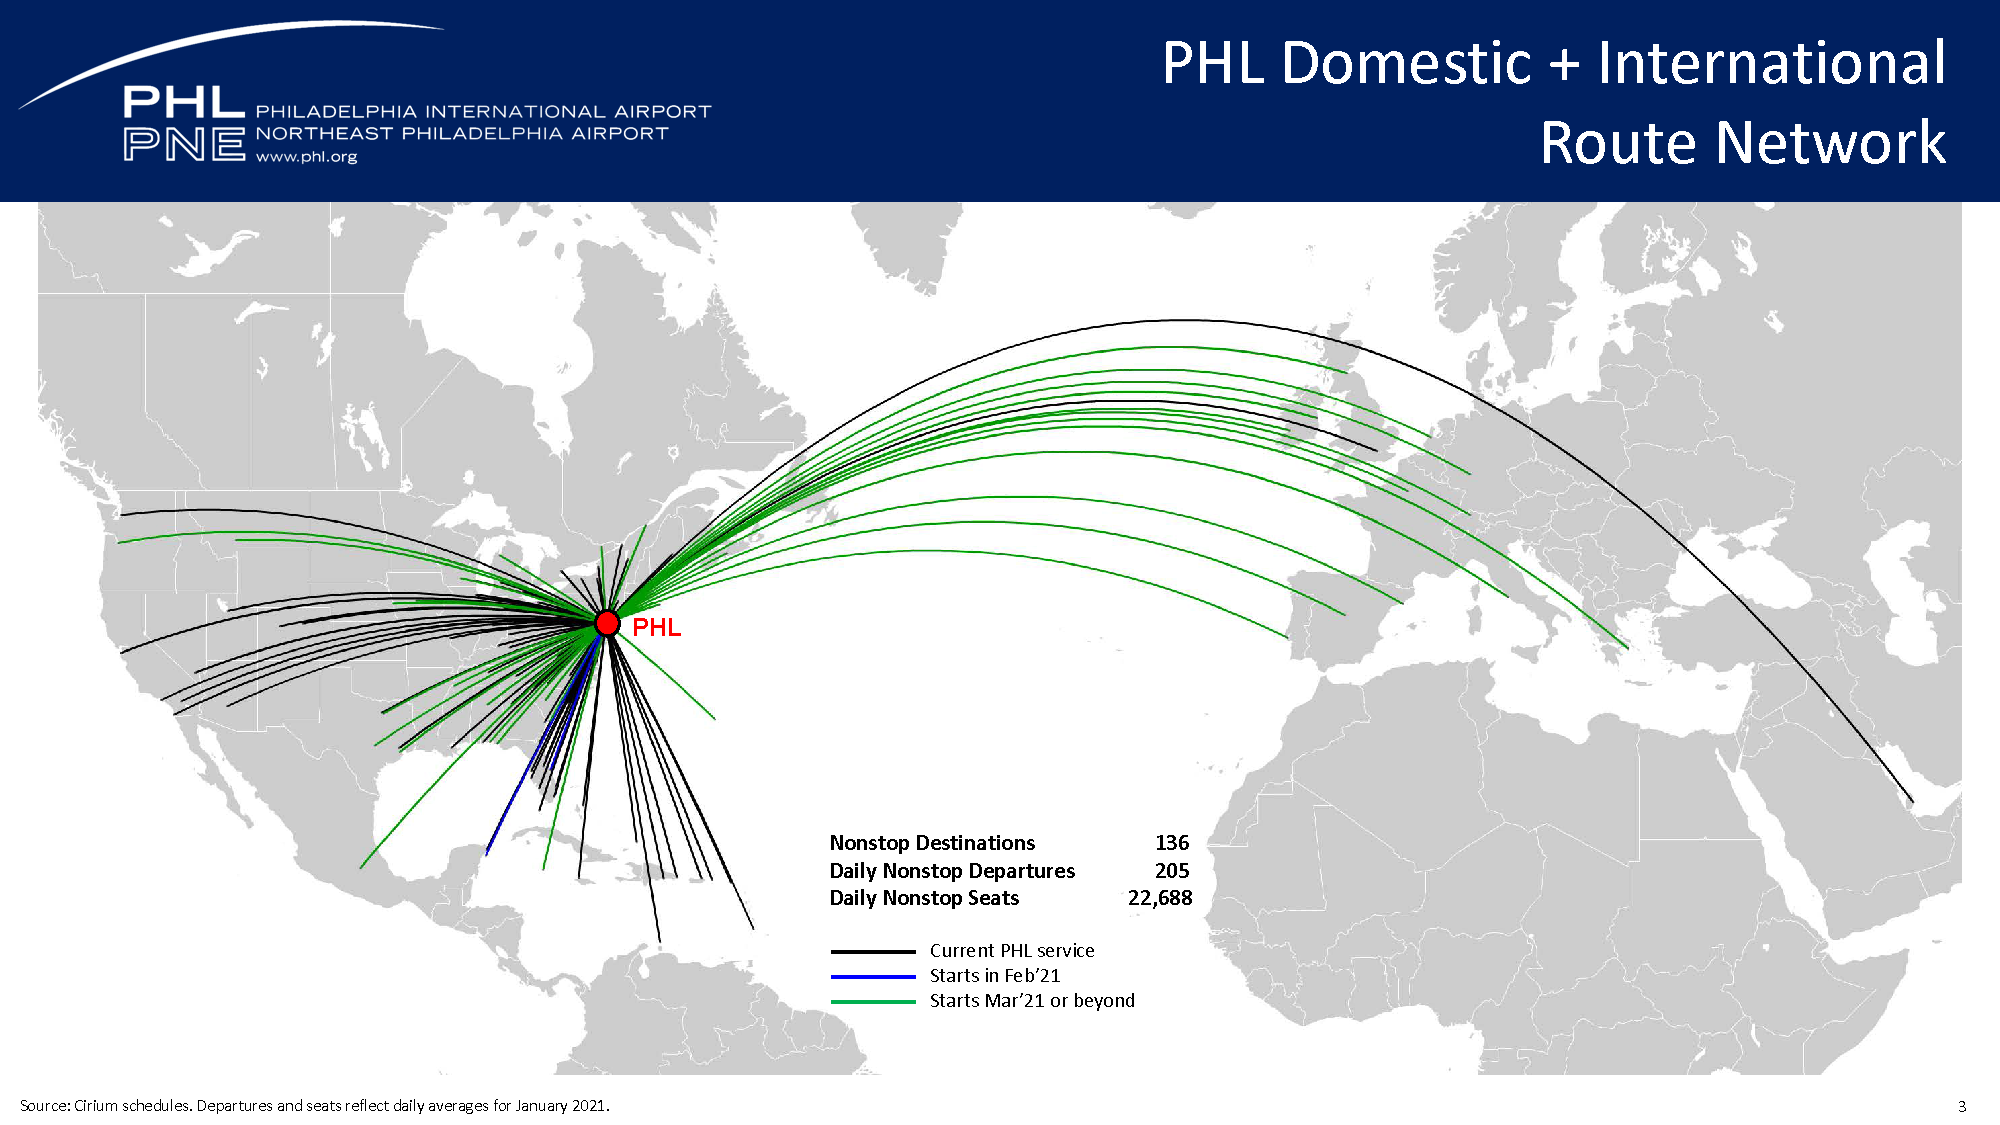 PHL Domestic + International Route Network